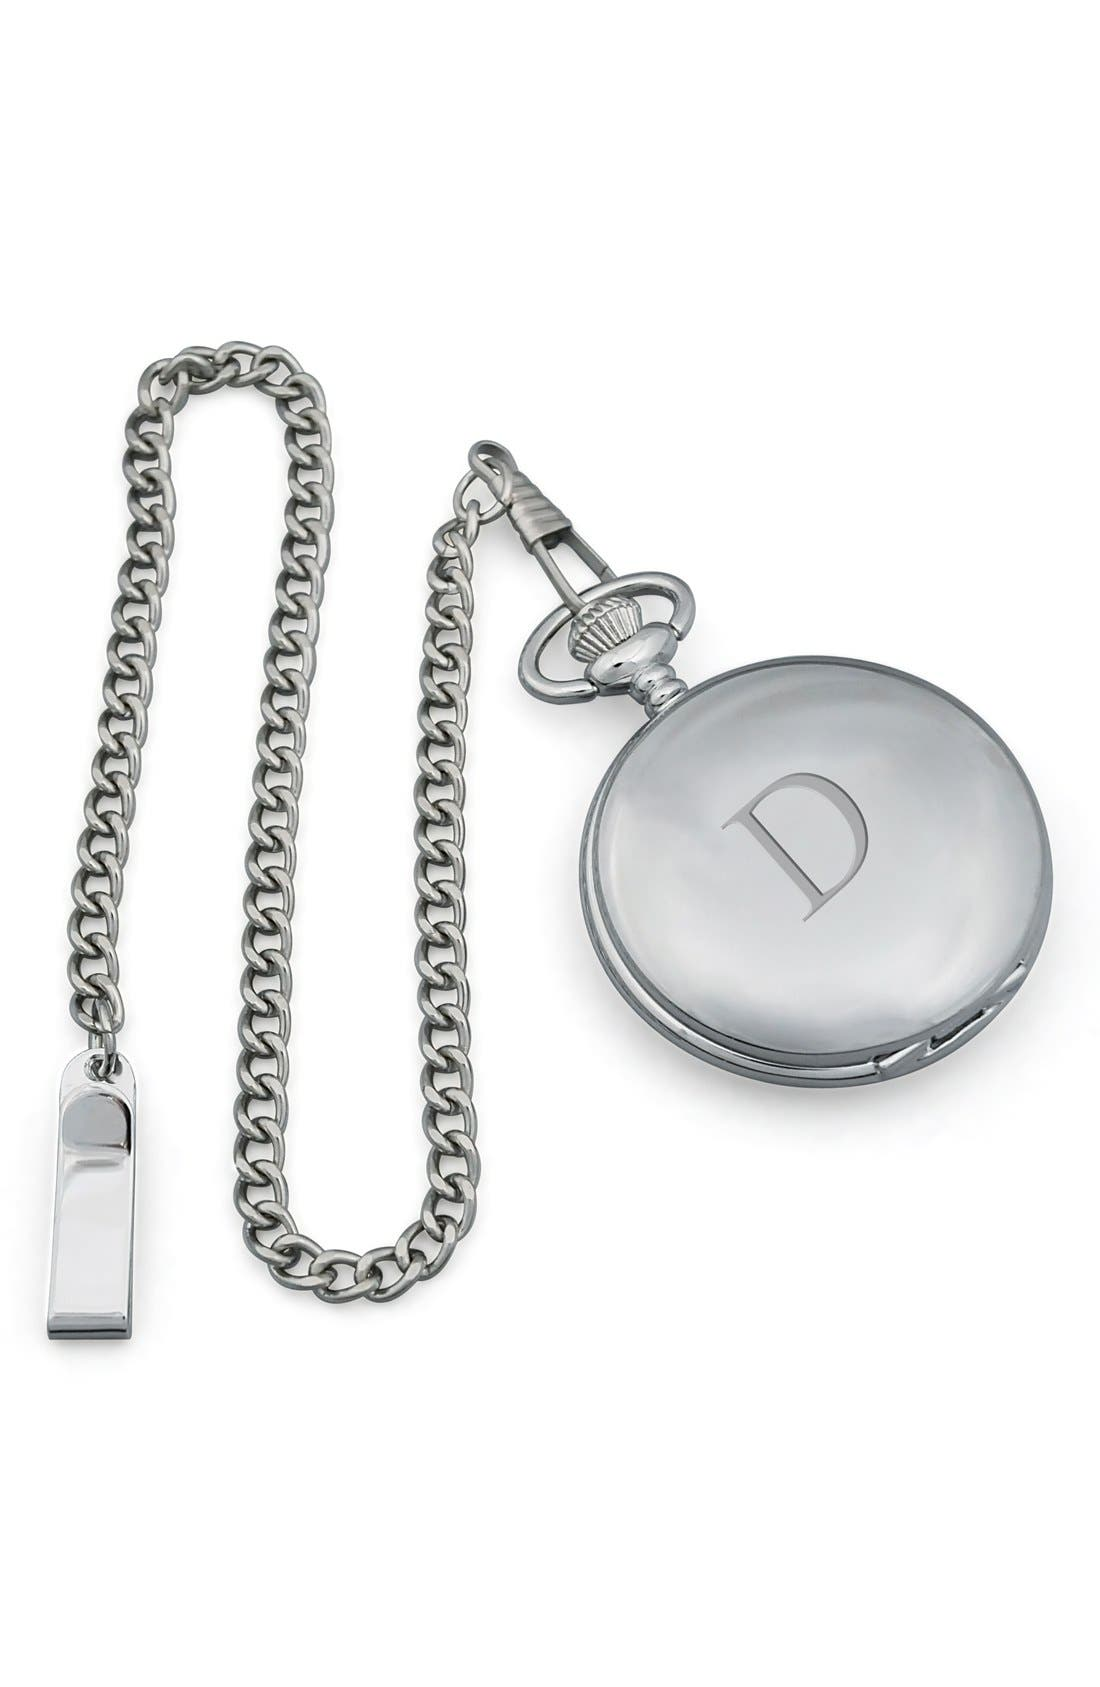 CATHYS CONCEPTS Silver Plate Monogram Pocket Watch, 44mm